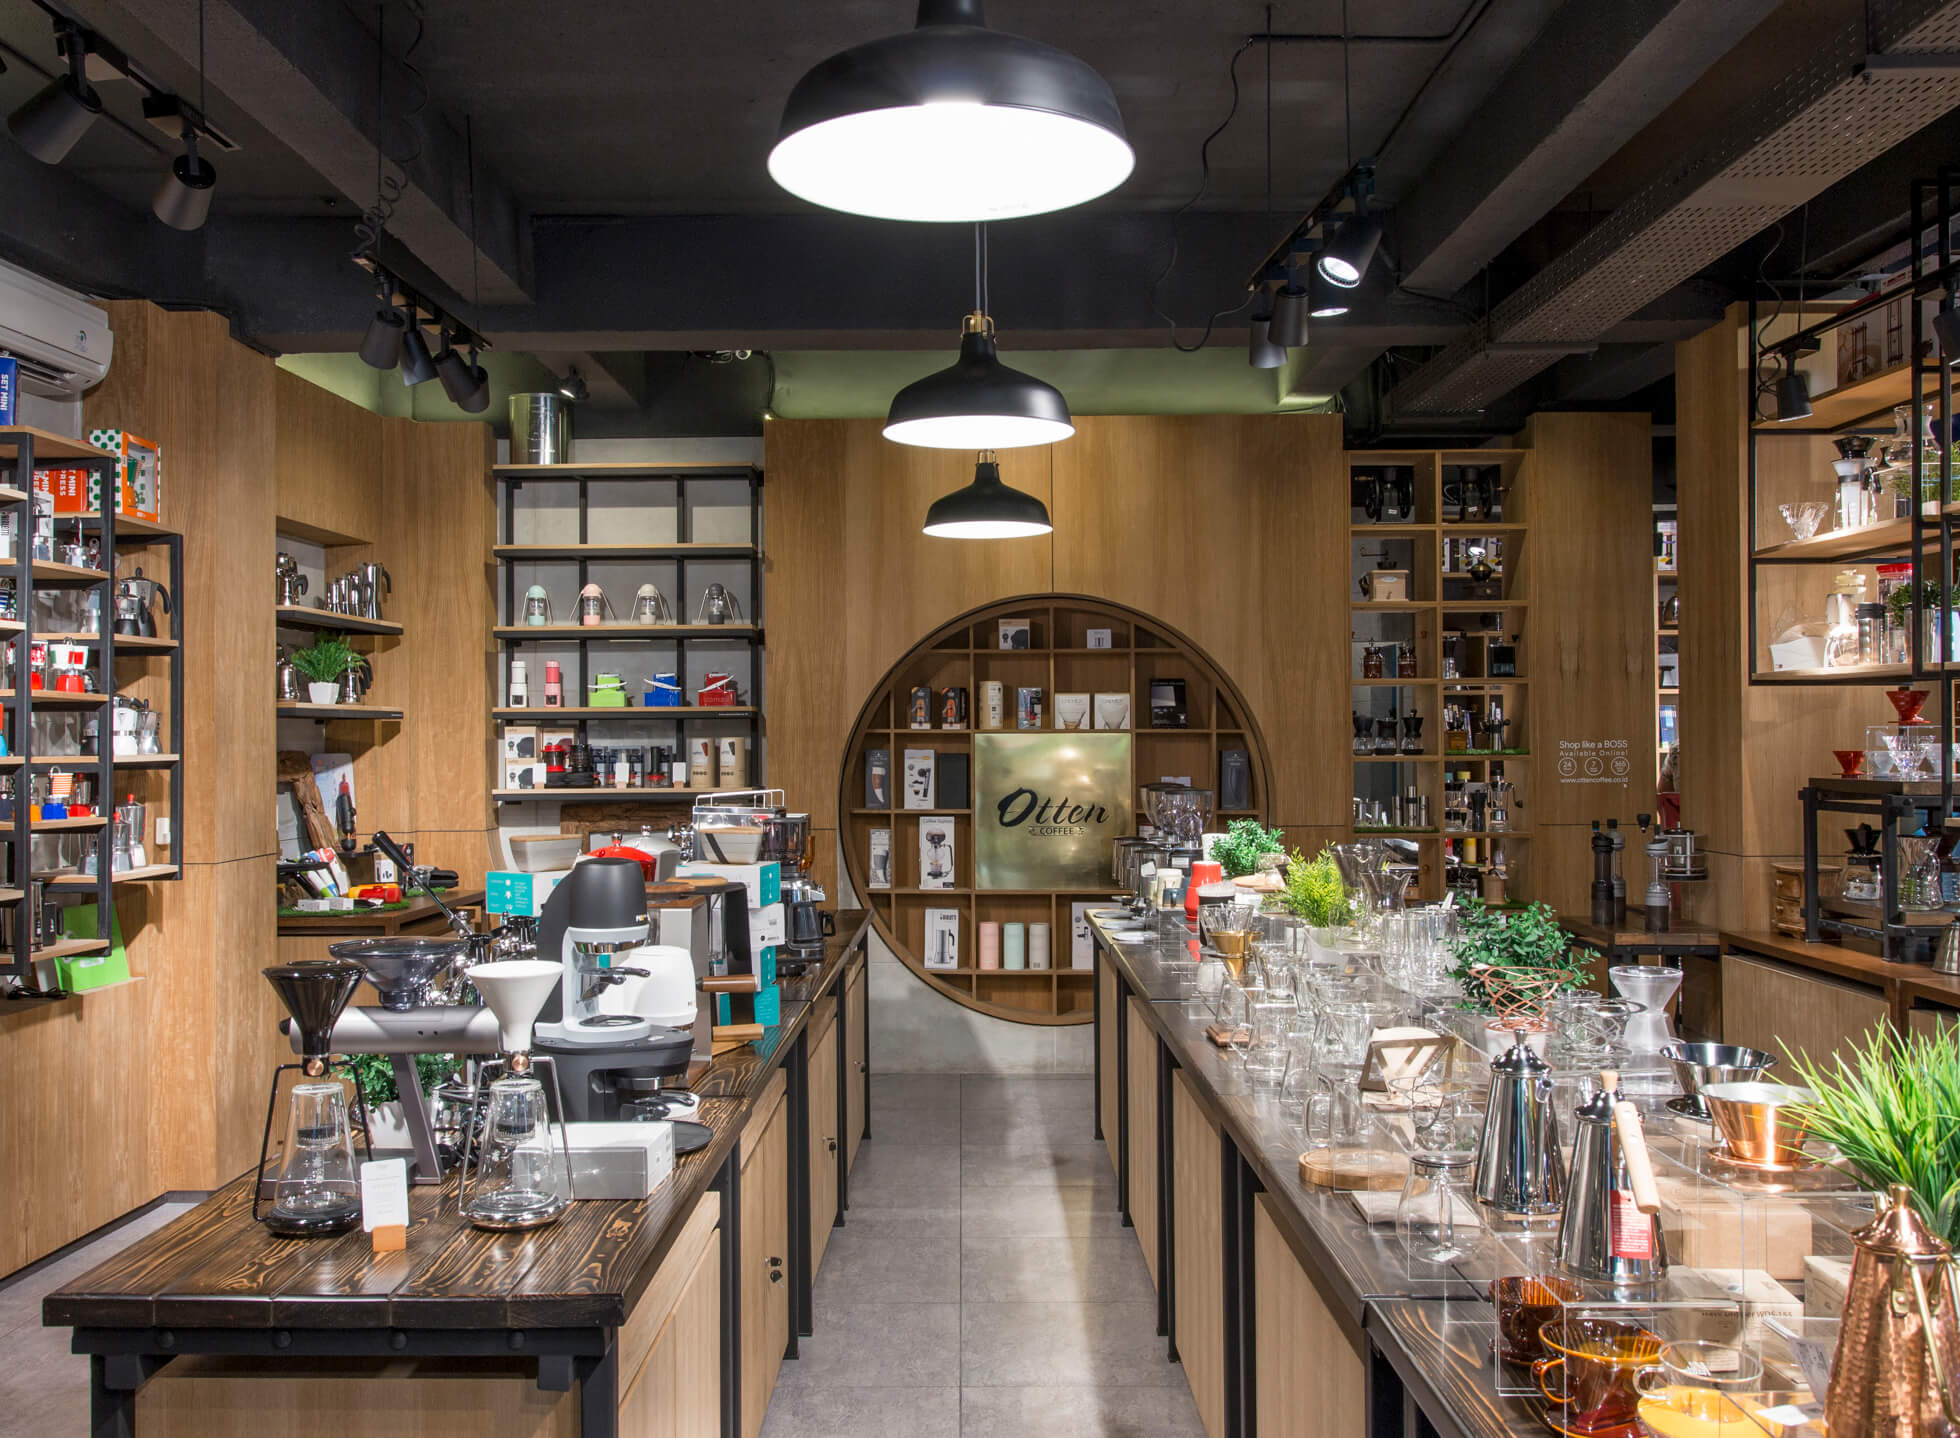 All Things Coffee at Otten Coffee